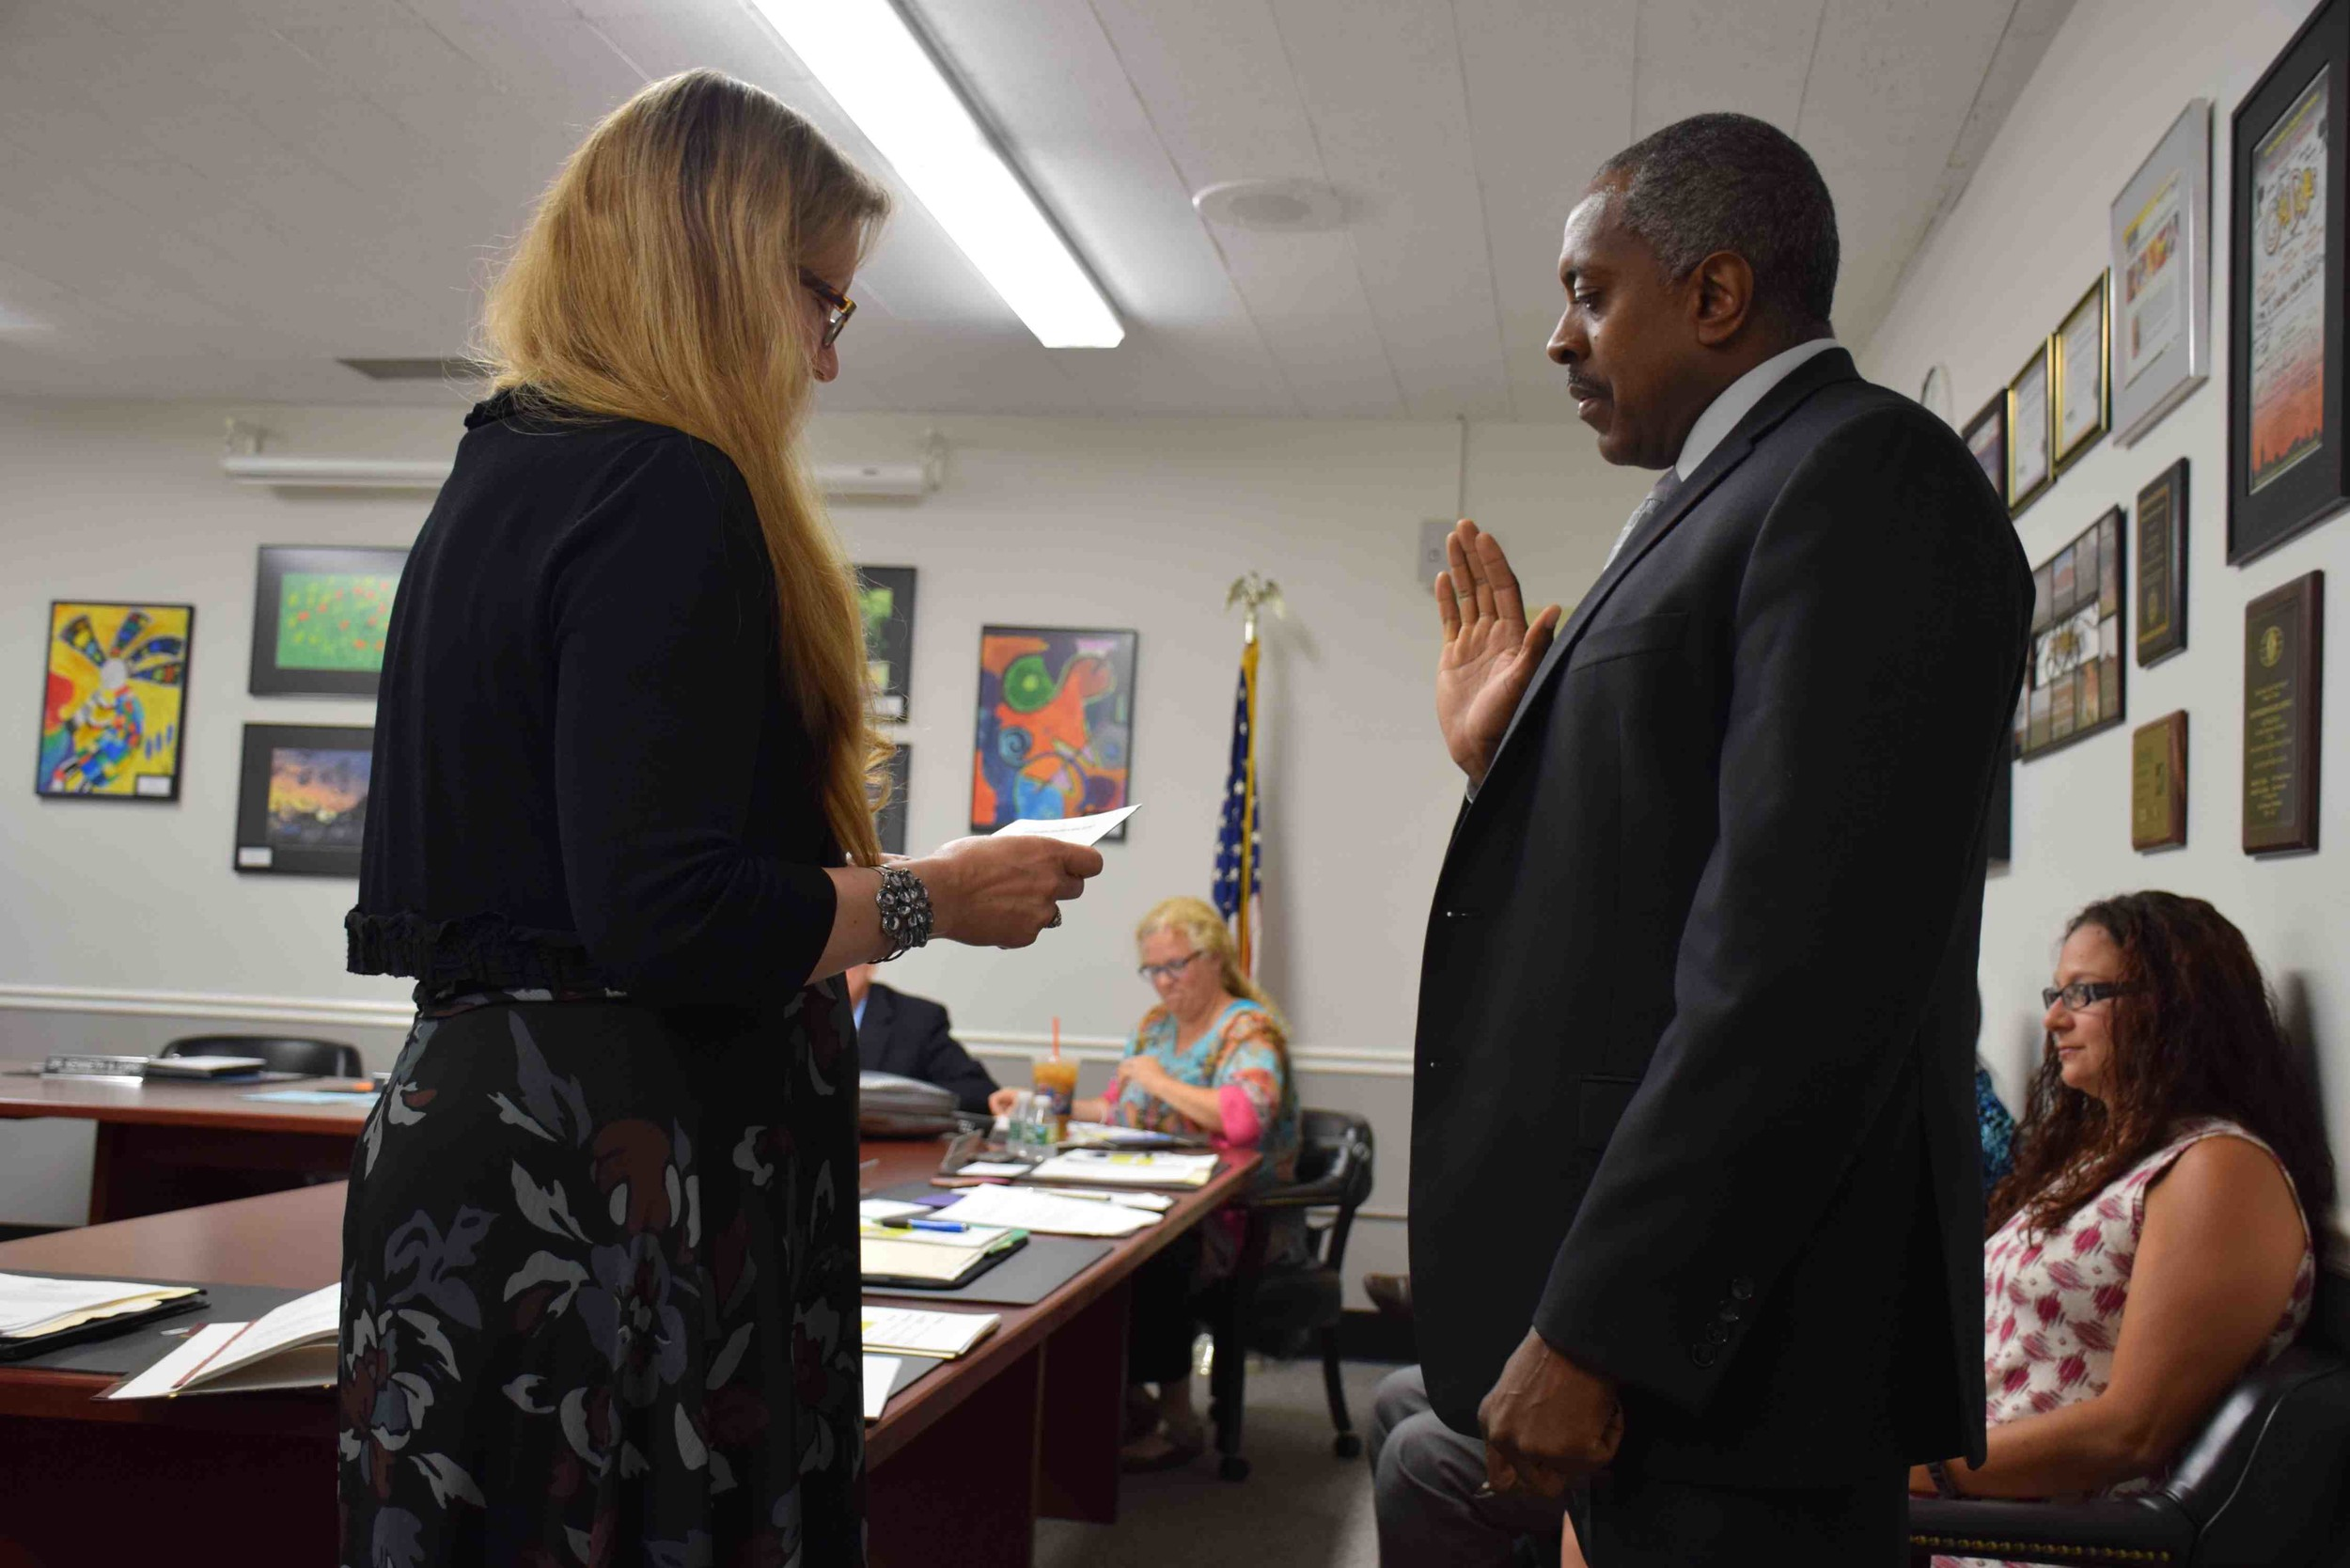 on july 6, superintendent of schools Dr. Kenneth Card Jr. took his oath of office, administered by district Clerk Jeanne Puma.